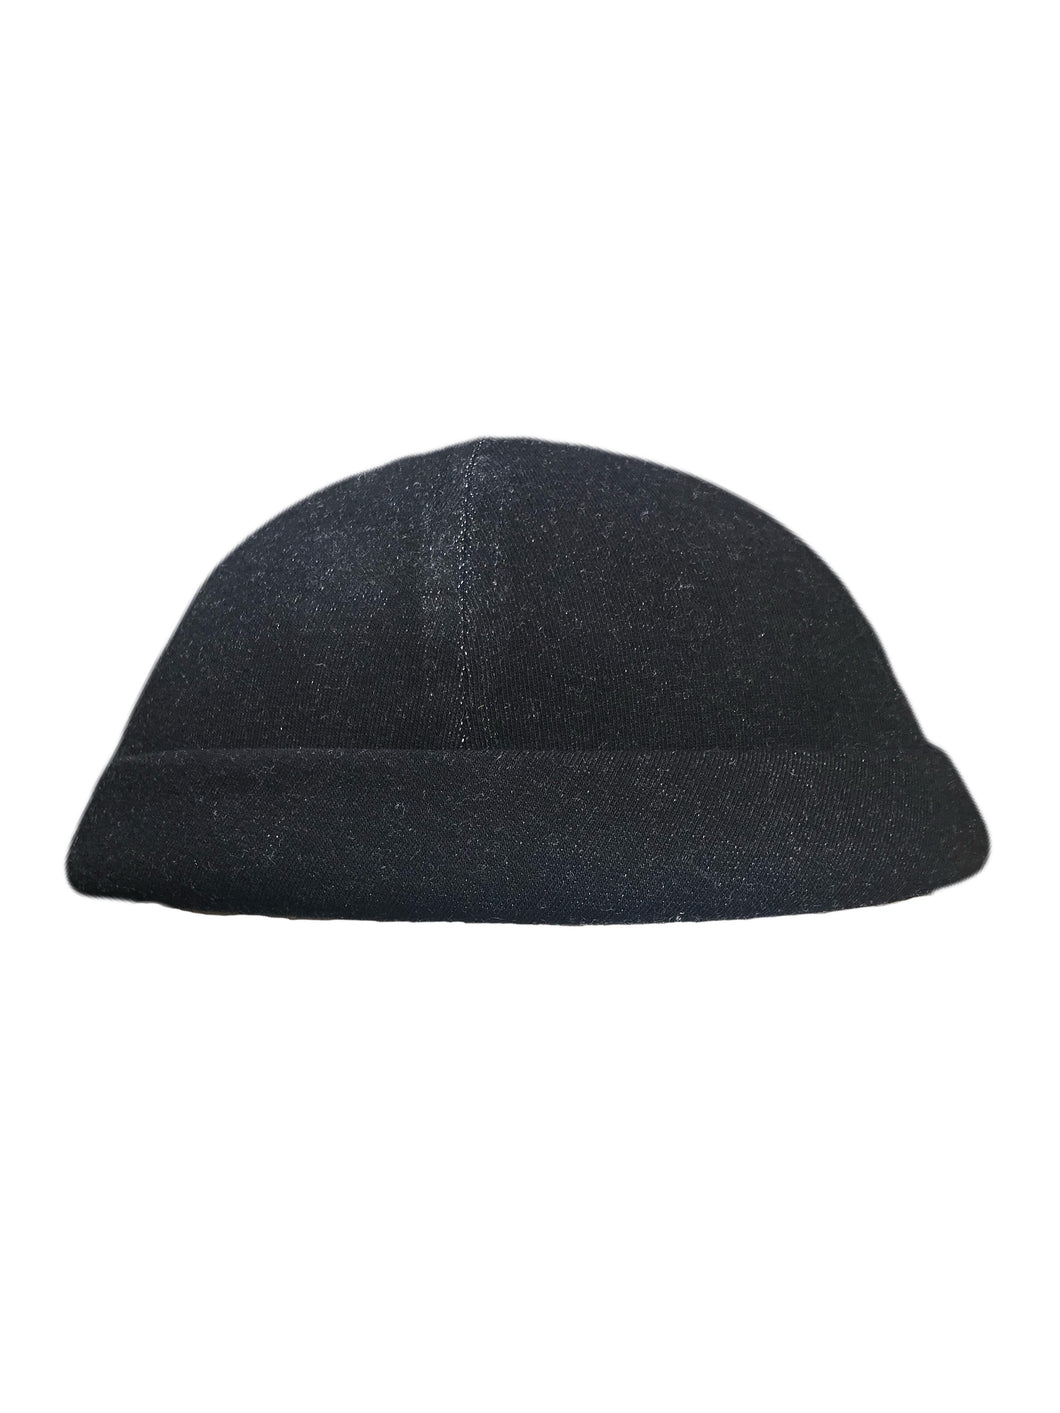 Black Lgt Knit [CrewCap [OG]